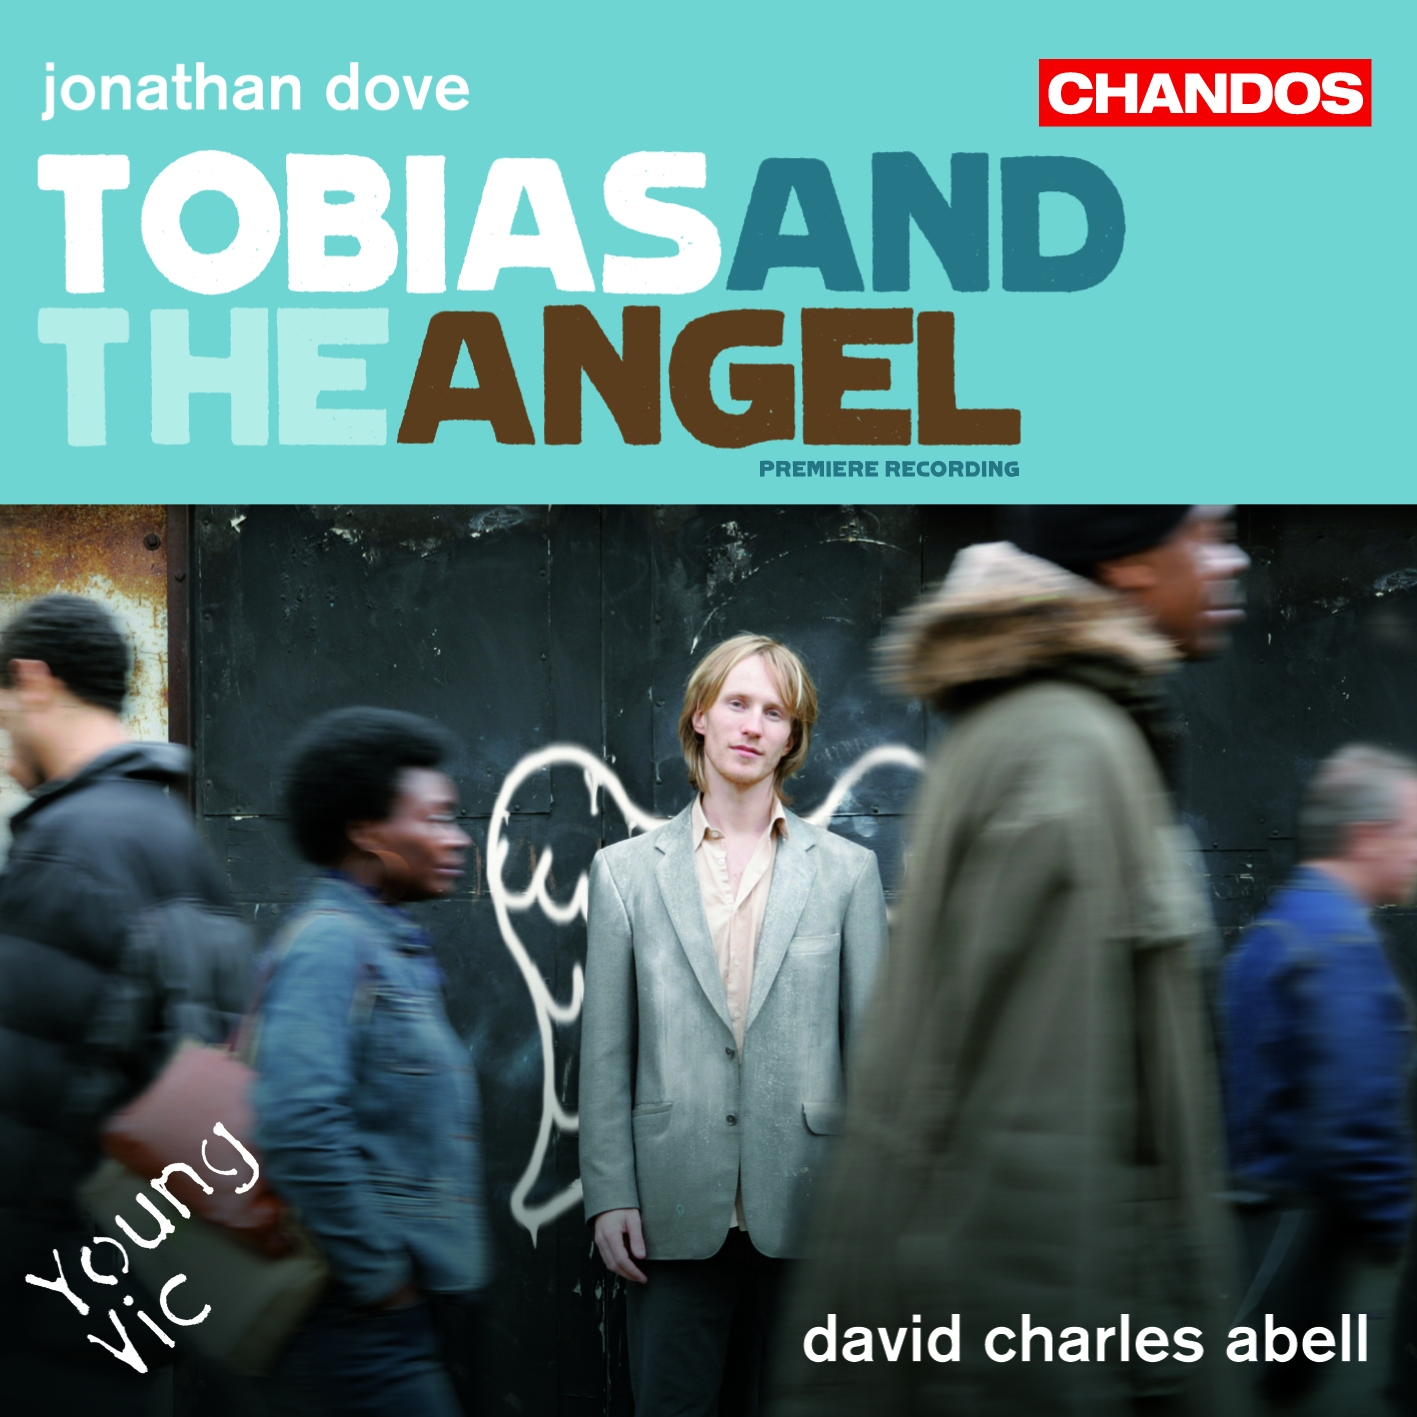 Rodney sings the role of Ashmodeus in a recording of Jonathan Dove's opera Tobias & the Angel.